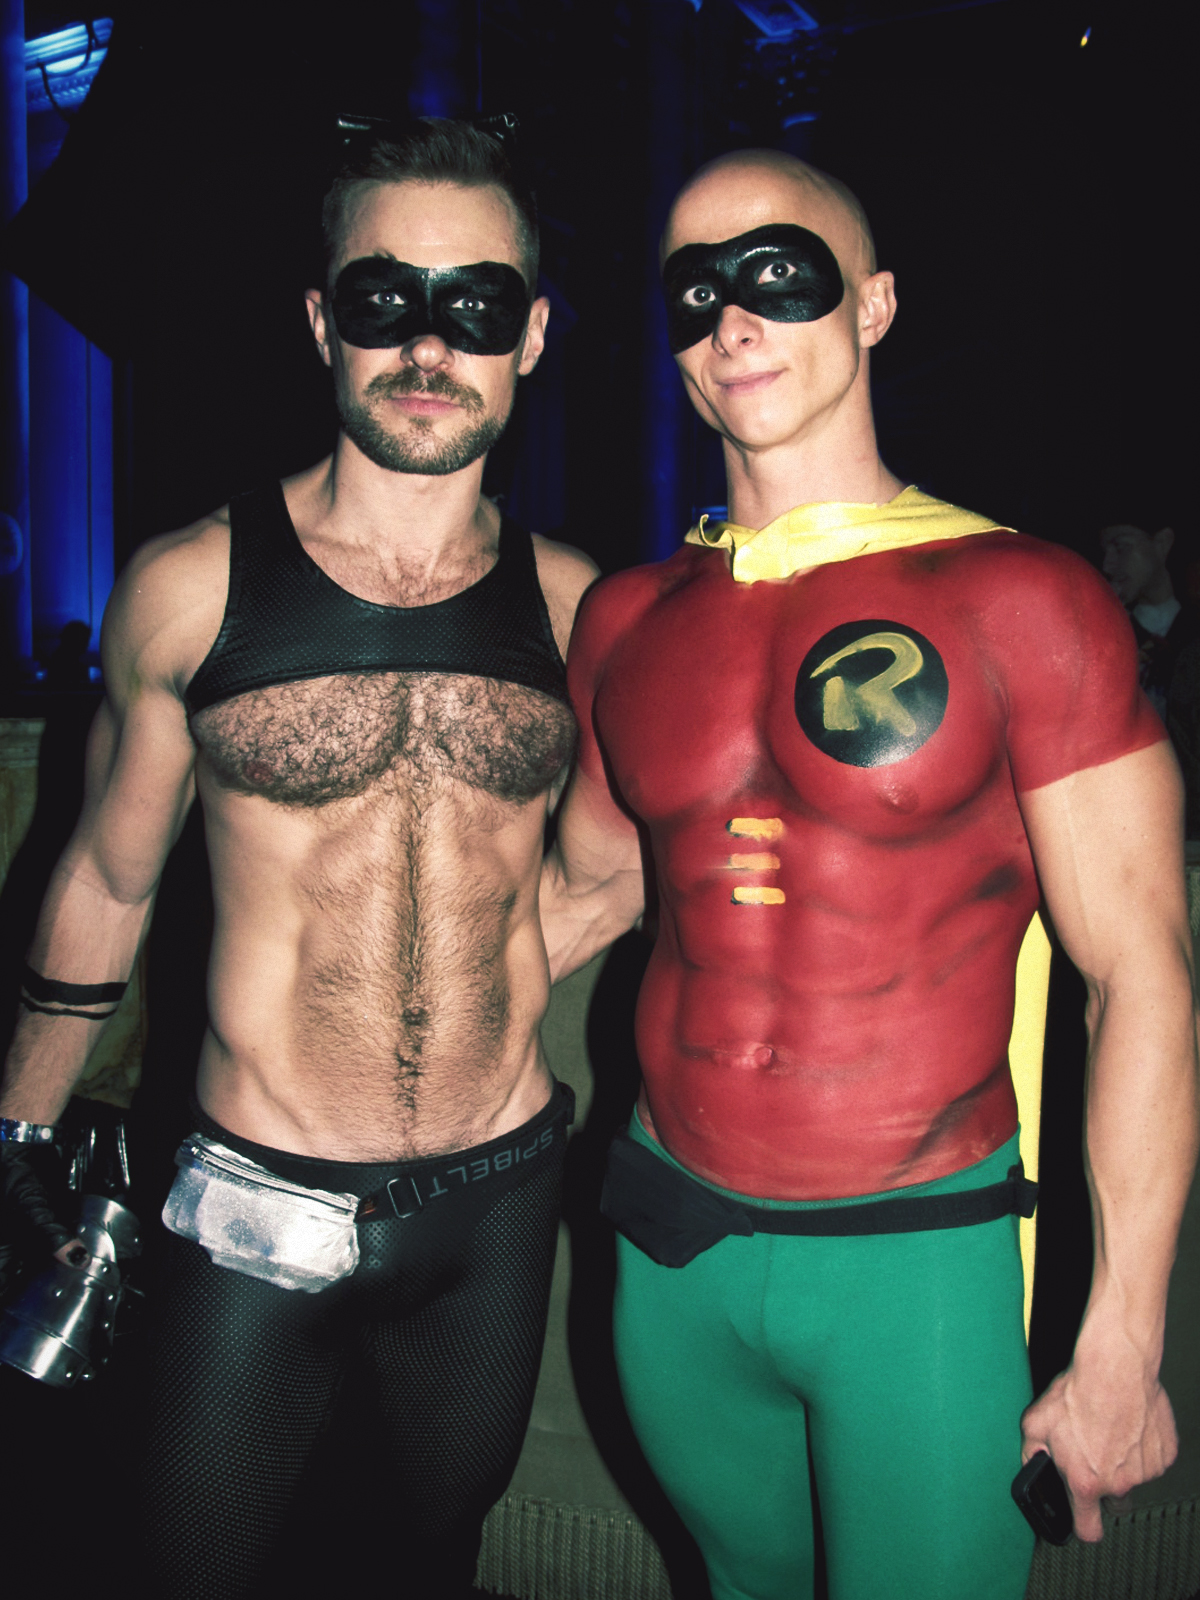 Cowboy halloween naked males pictures-6681